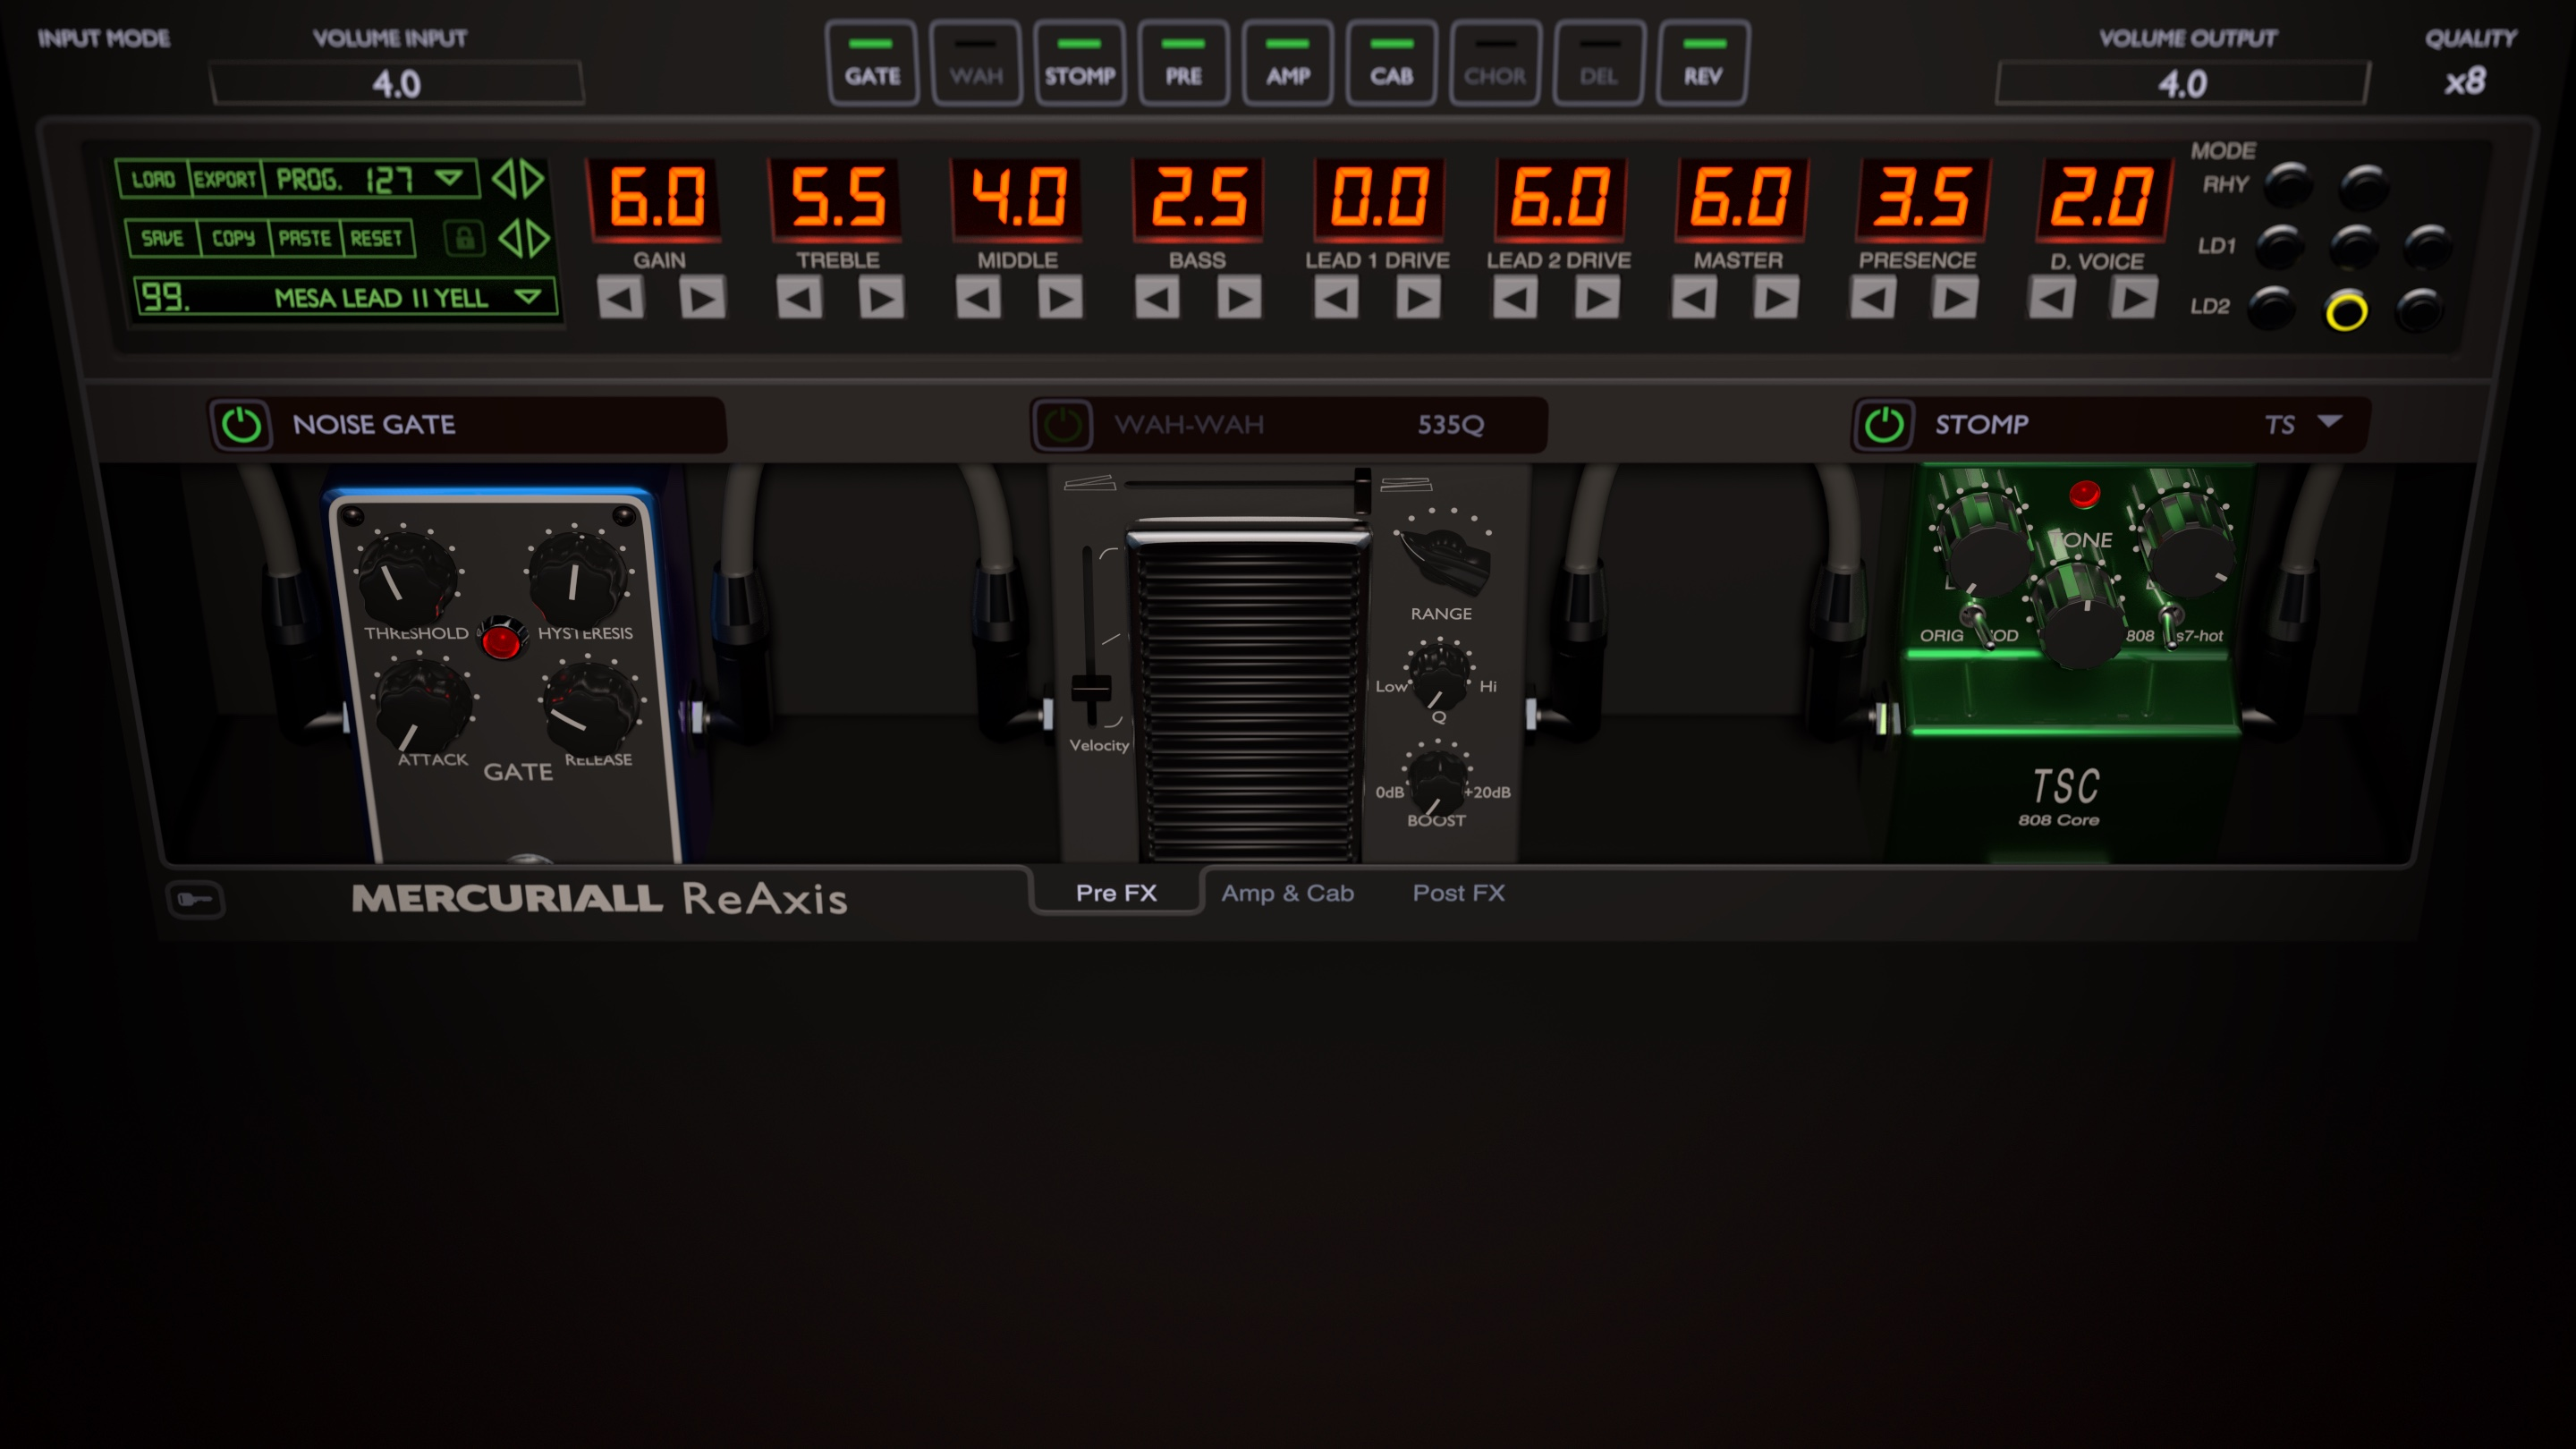 kvr reaxis by mercuriall audio software guitar amp and fx modeling vst plugin audio units. Black Bedroom Furniture Sets. Home Design Ideas